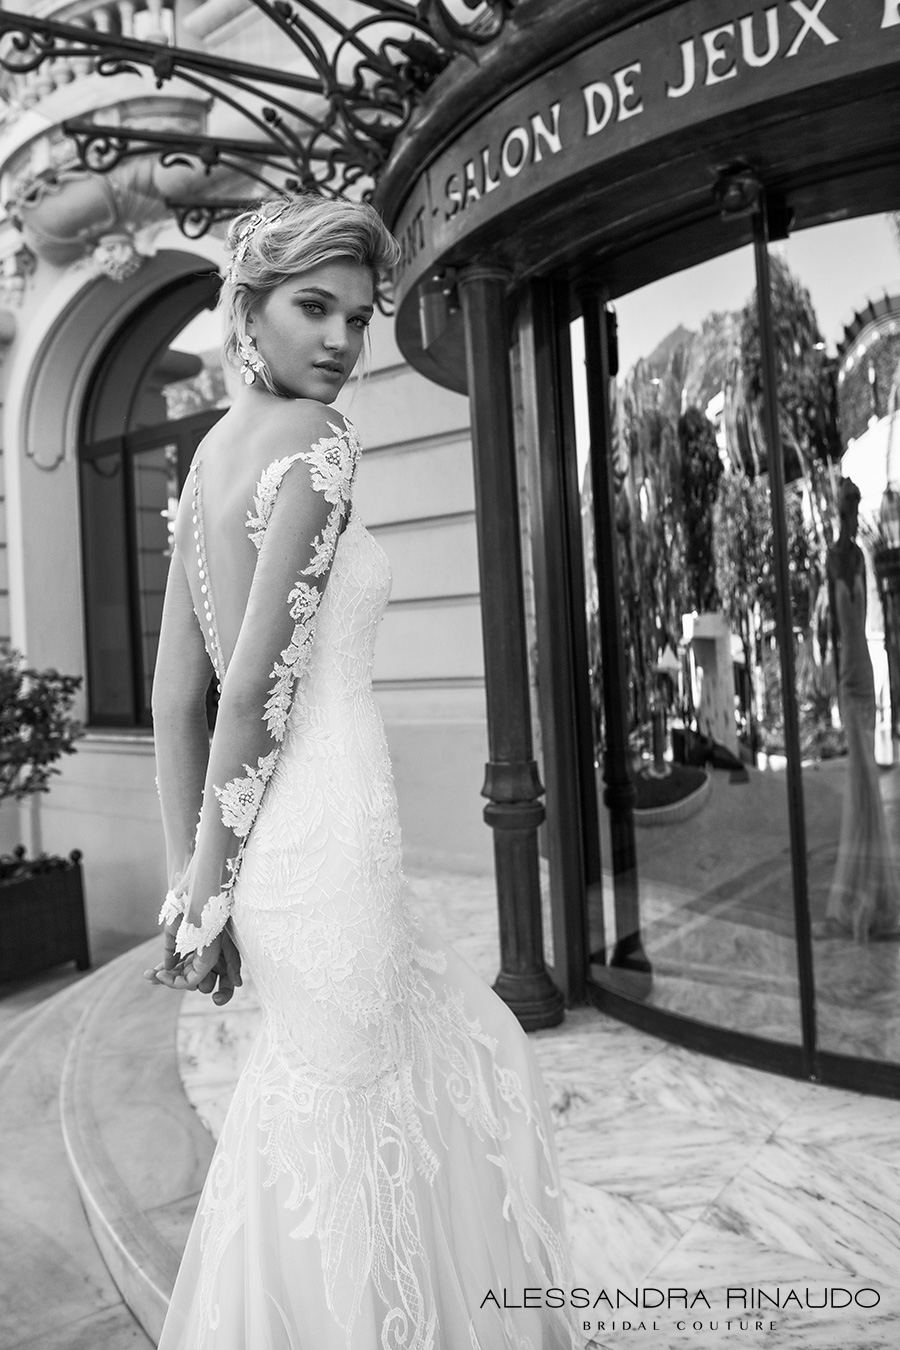 alessandra rinaudo 2017 bridal lace long sleeves illusion boat sweetheart neckline elegant fit and flare wedding dress illusion low back long train (bergenia) zbv